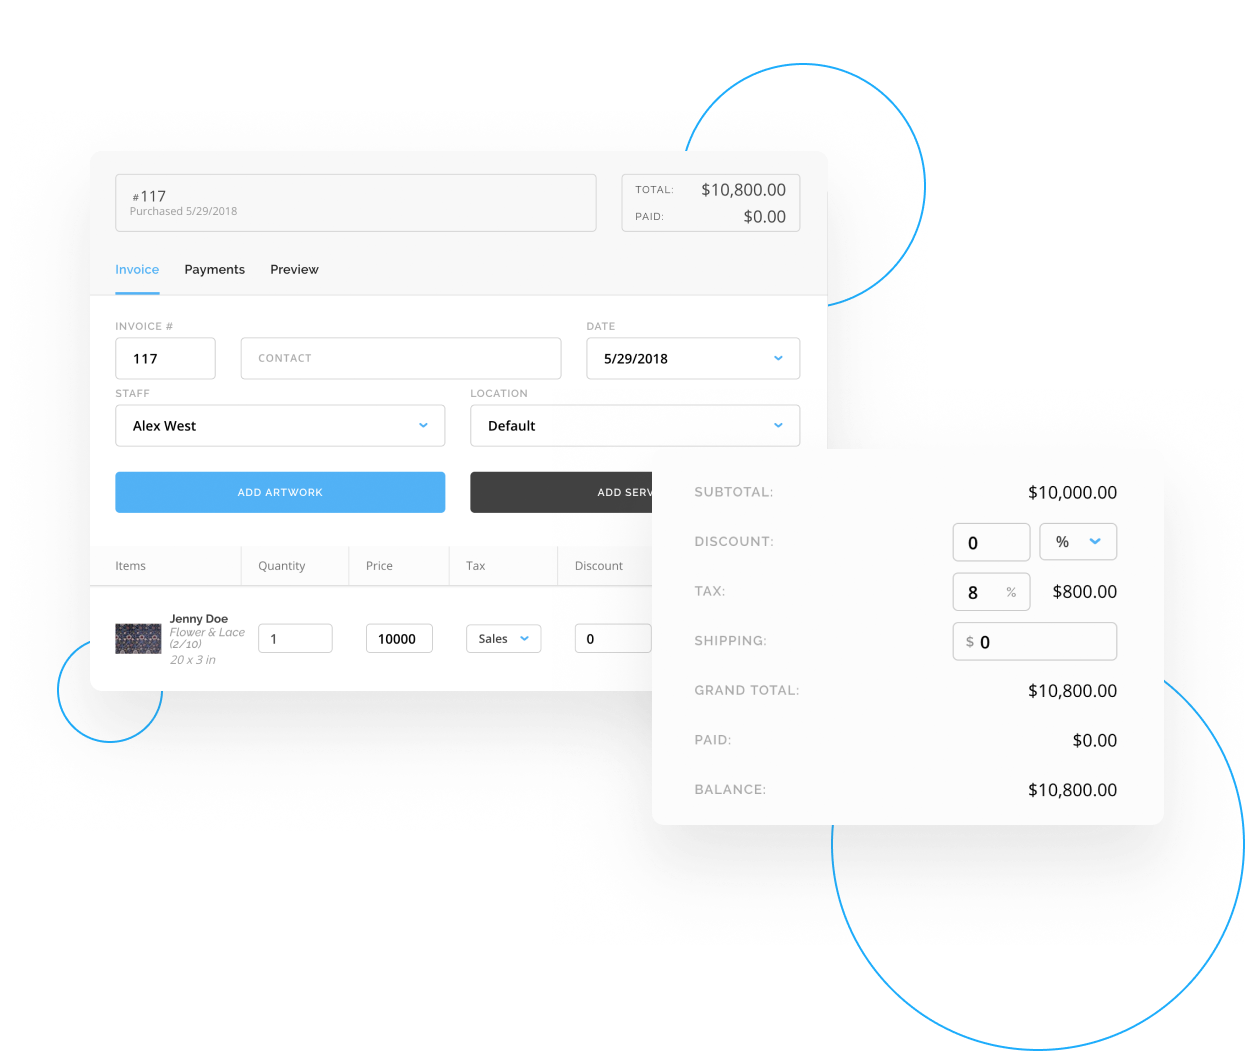 Invoices in ArtCloud Manager